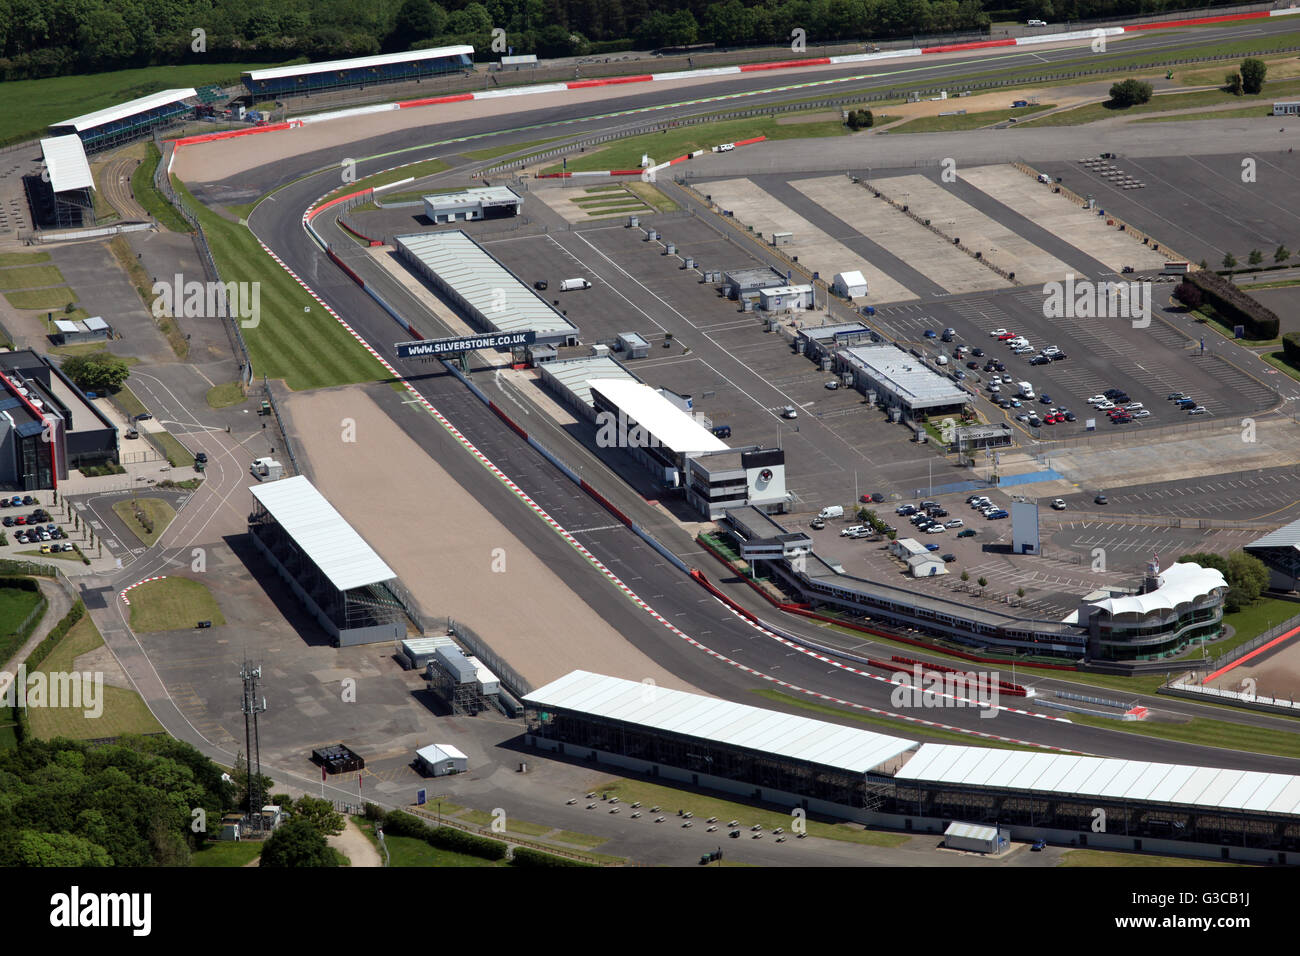 aerial view of the home straight start finish line at Silverstone Racing Circuit, Northamptonshire, UK - Stock Image